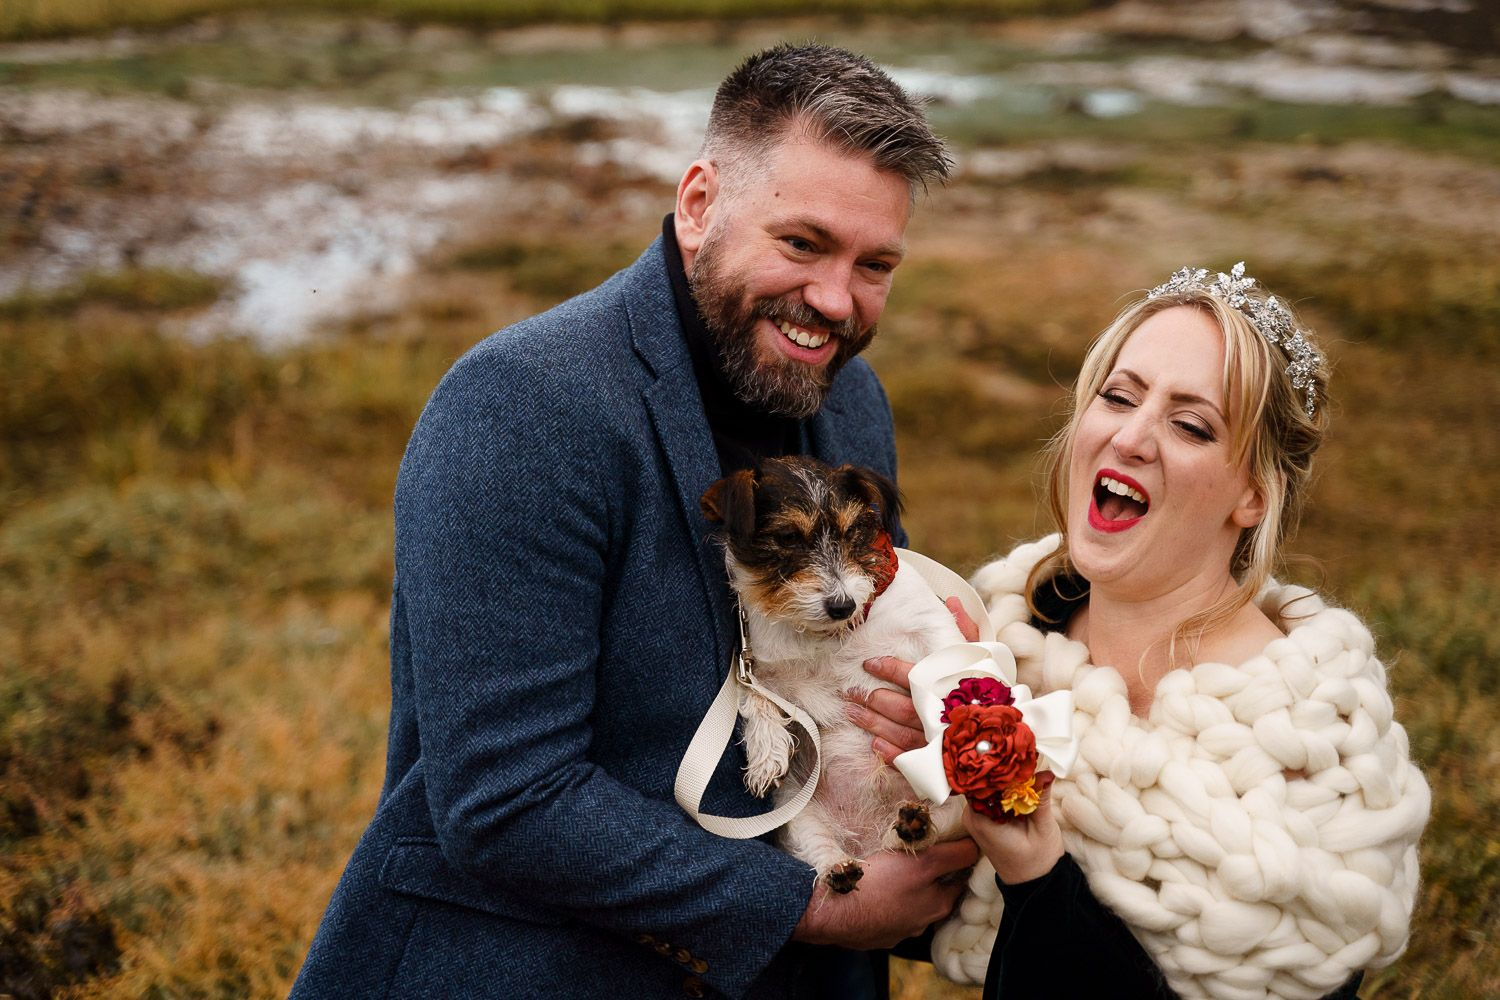 Bride and groom laugh as they hug their dog at their wedding. Top 10 dog-friendly wedding tips.